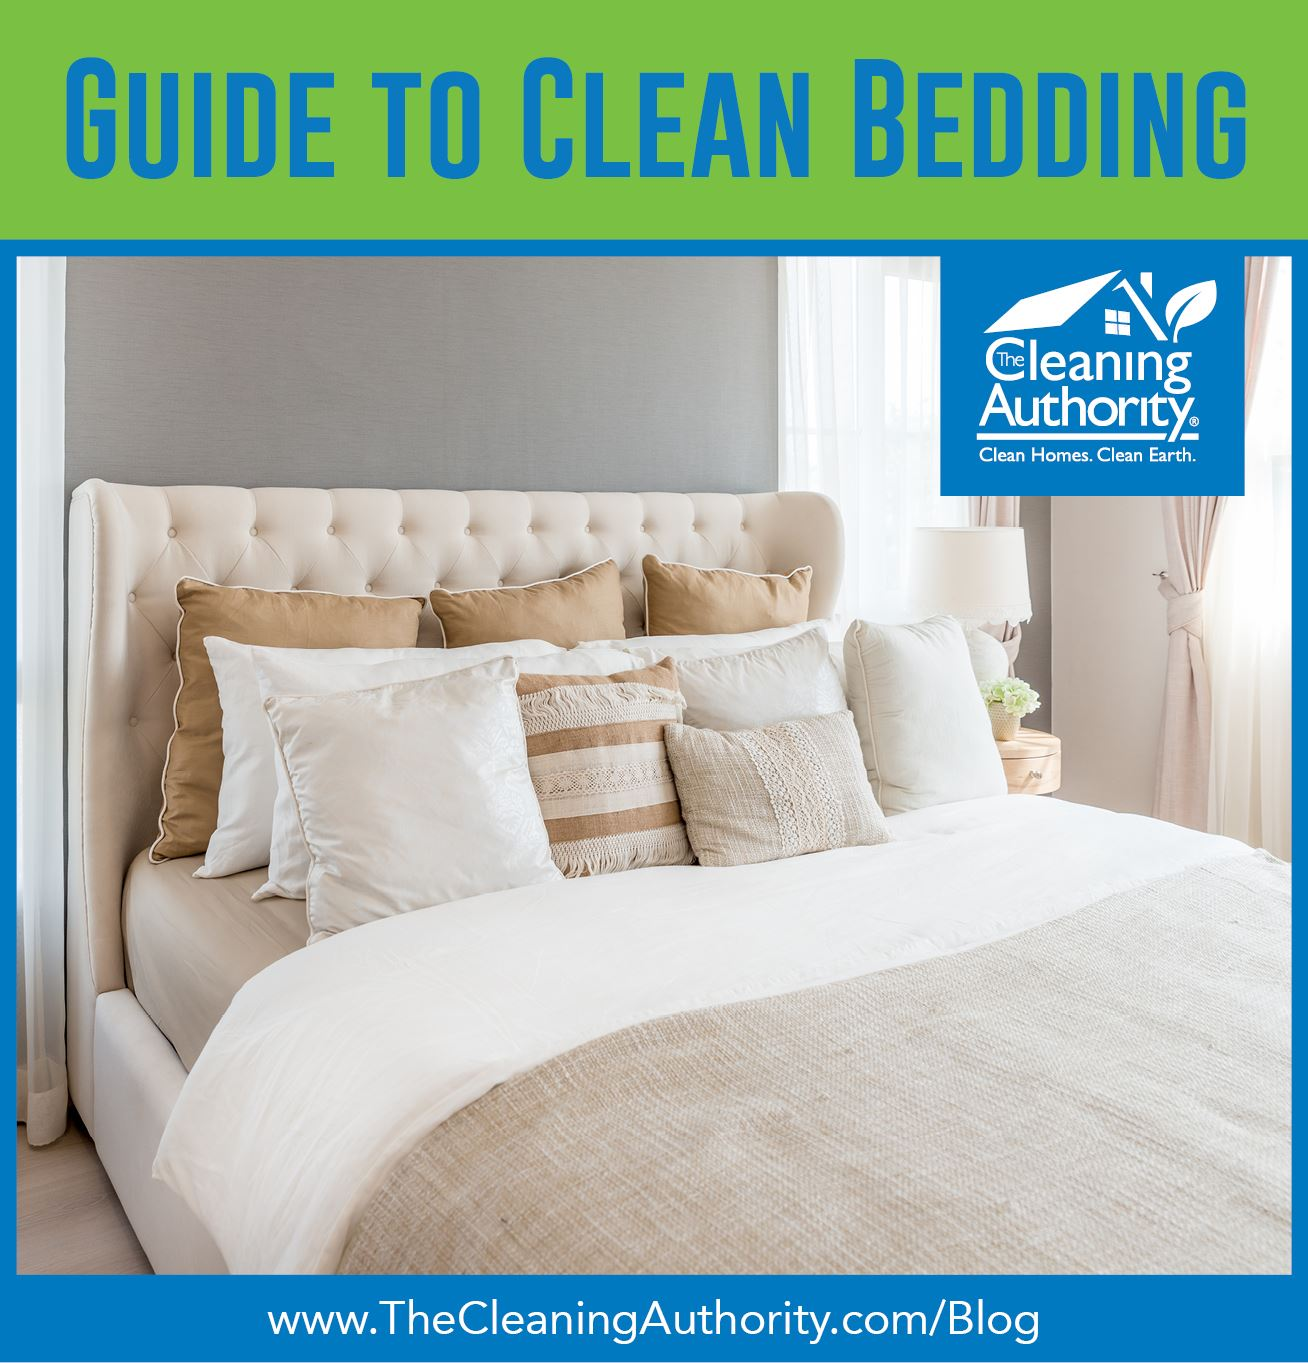 nicely made bed with header Guide to Clean Bedding